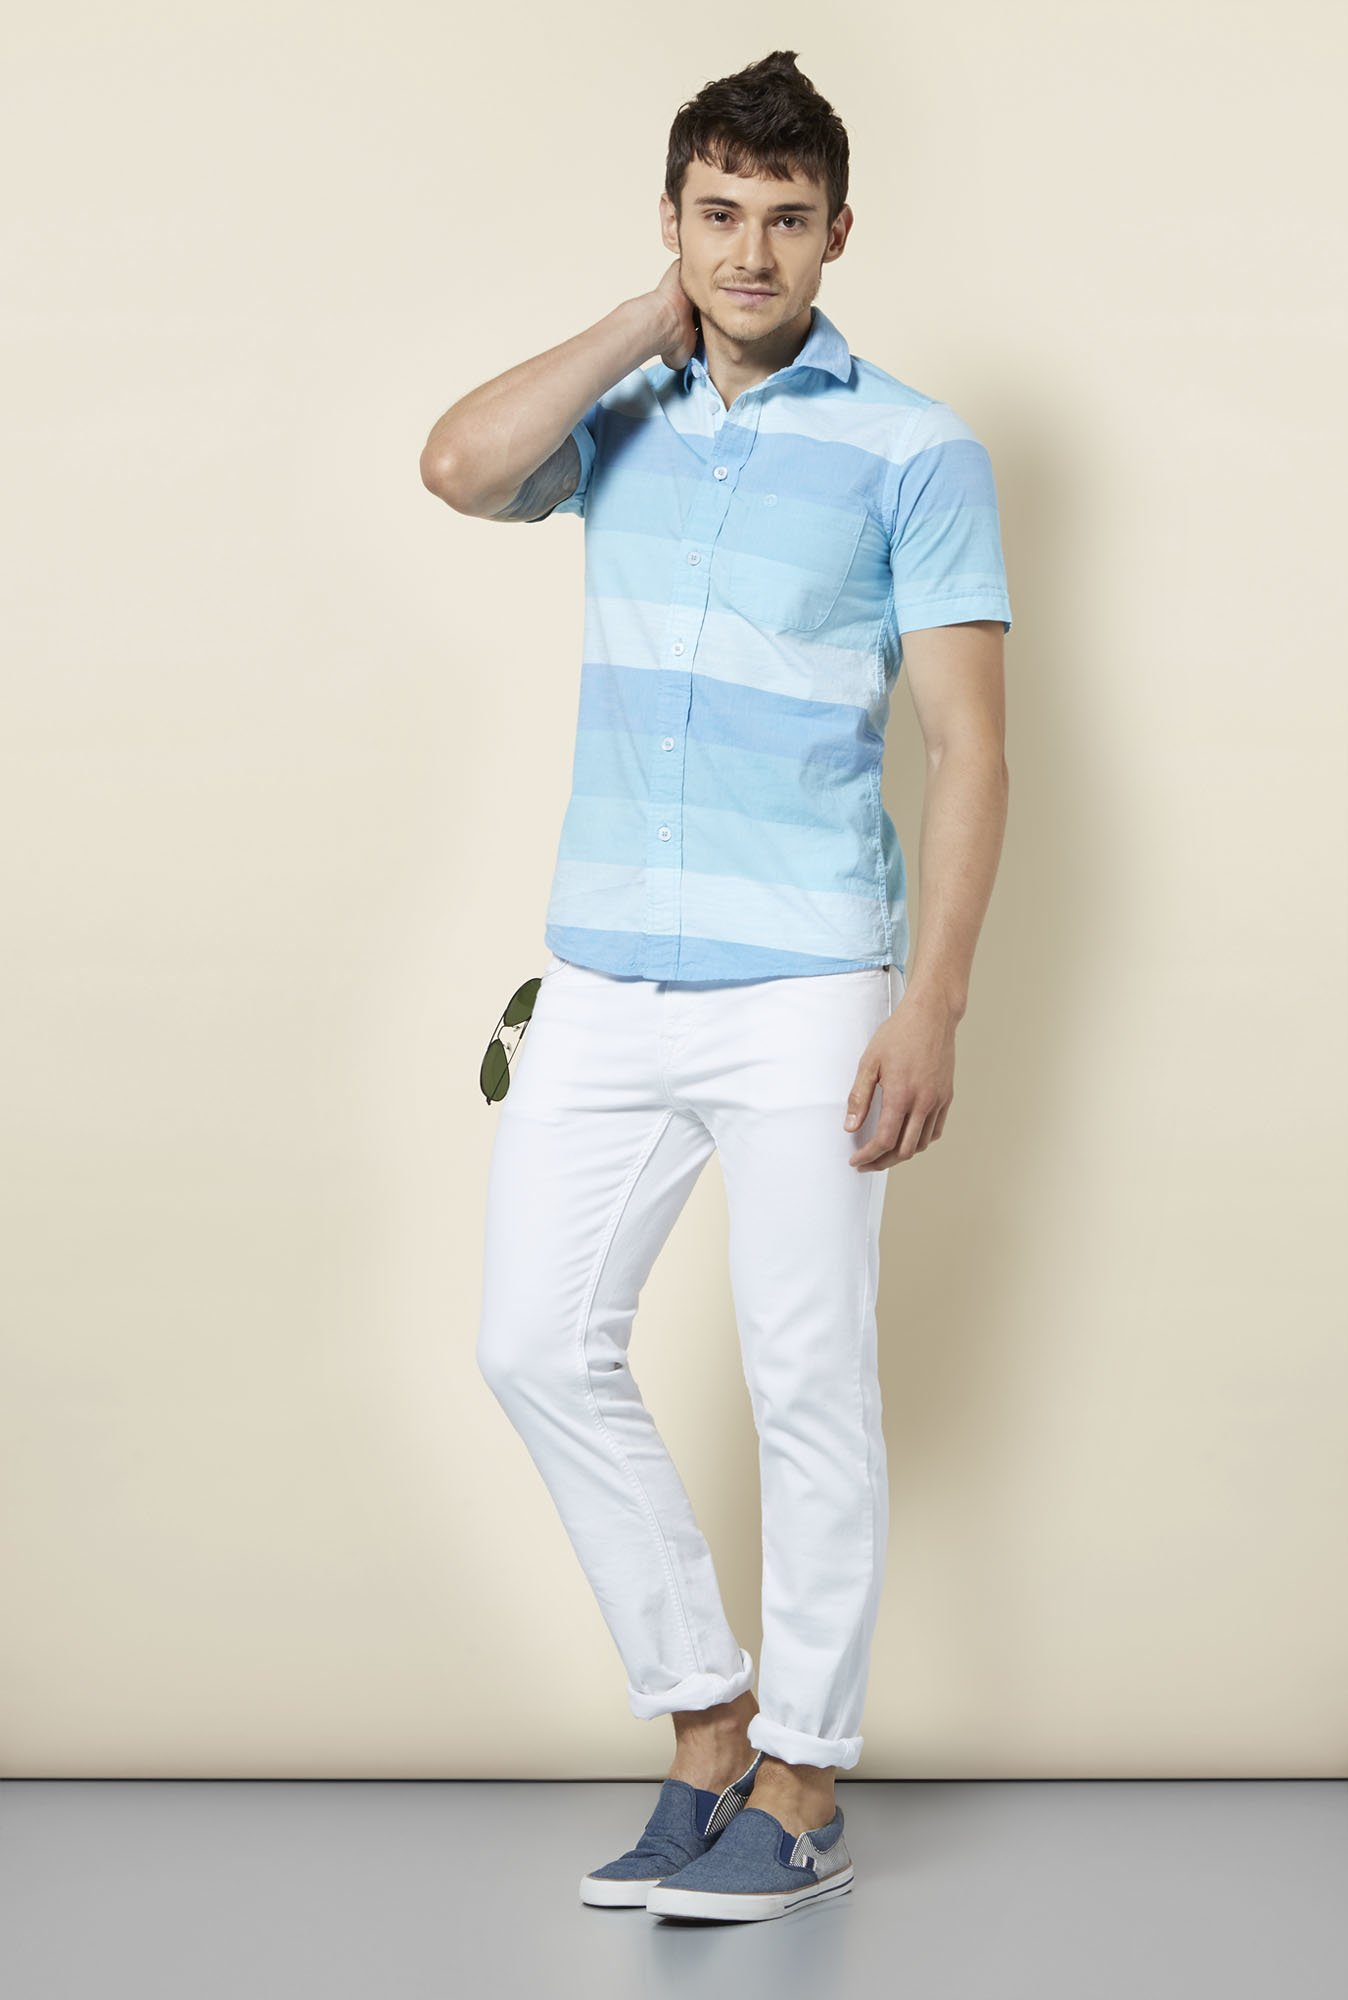 Integriti Blue Slim Fit Shirt